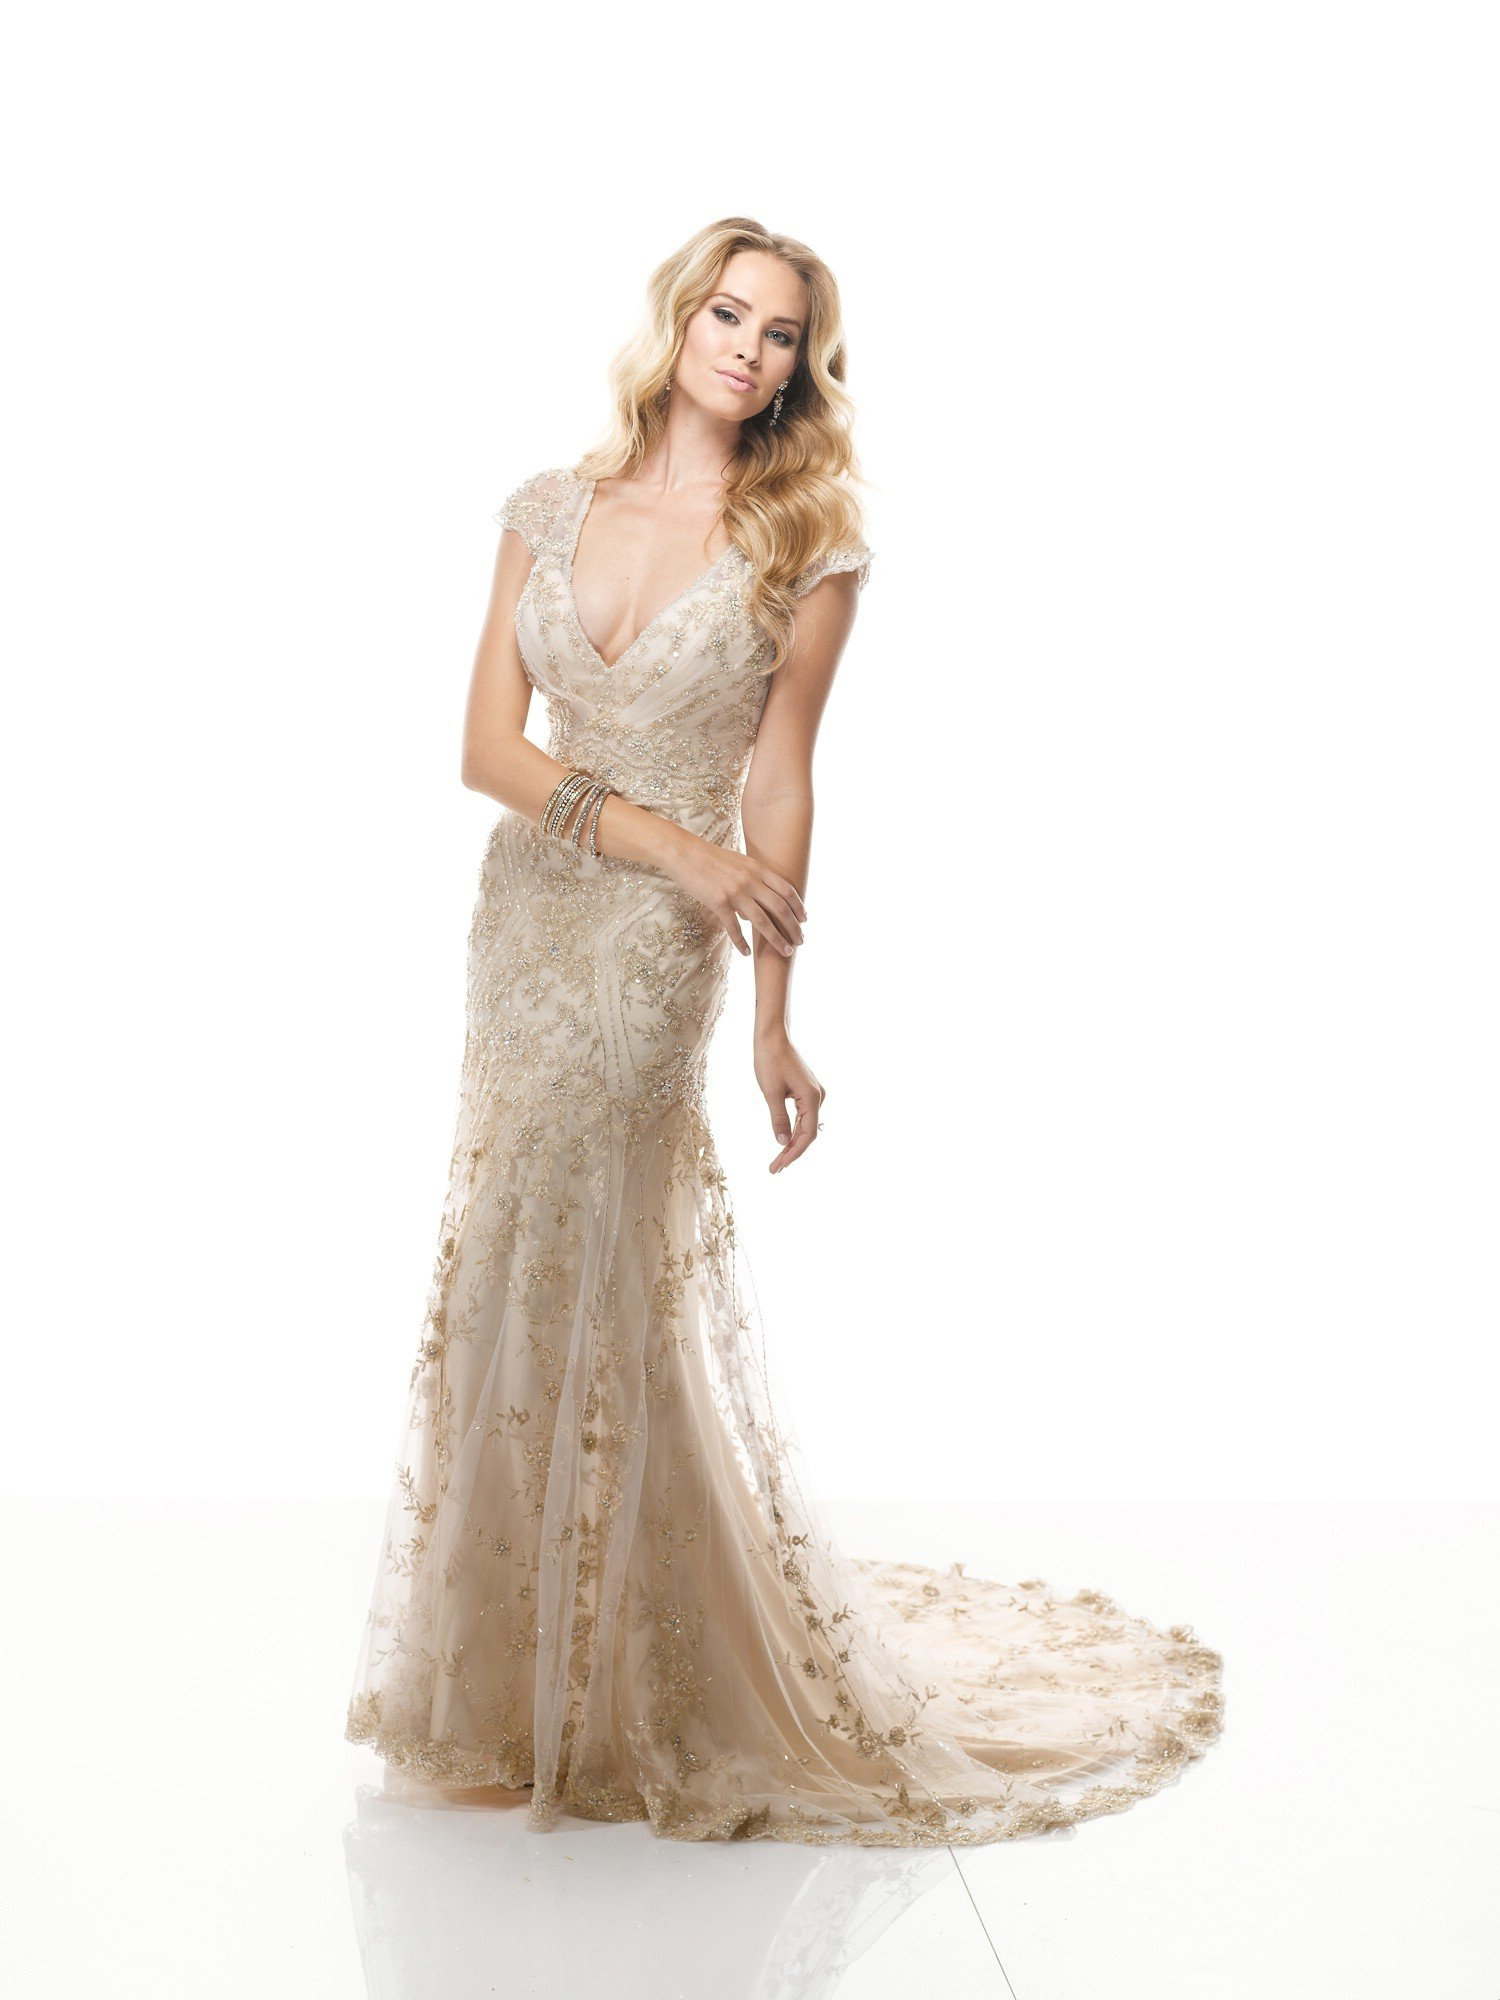 Maggie Sottero Gold Wedding Dress - Wedding and Bridal ...